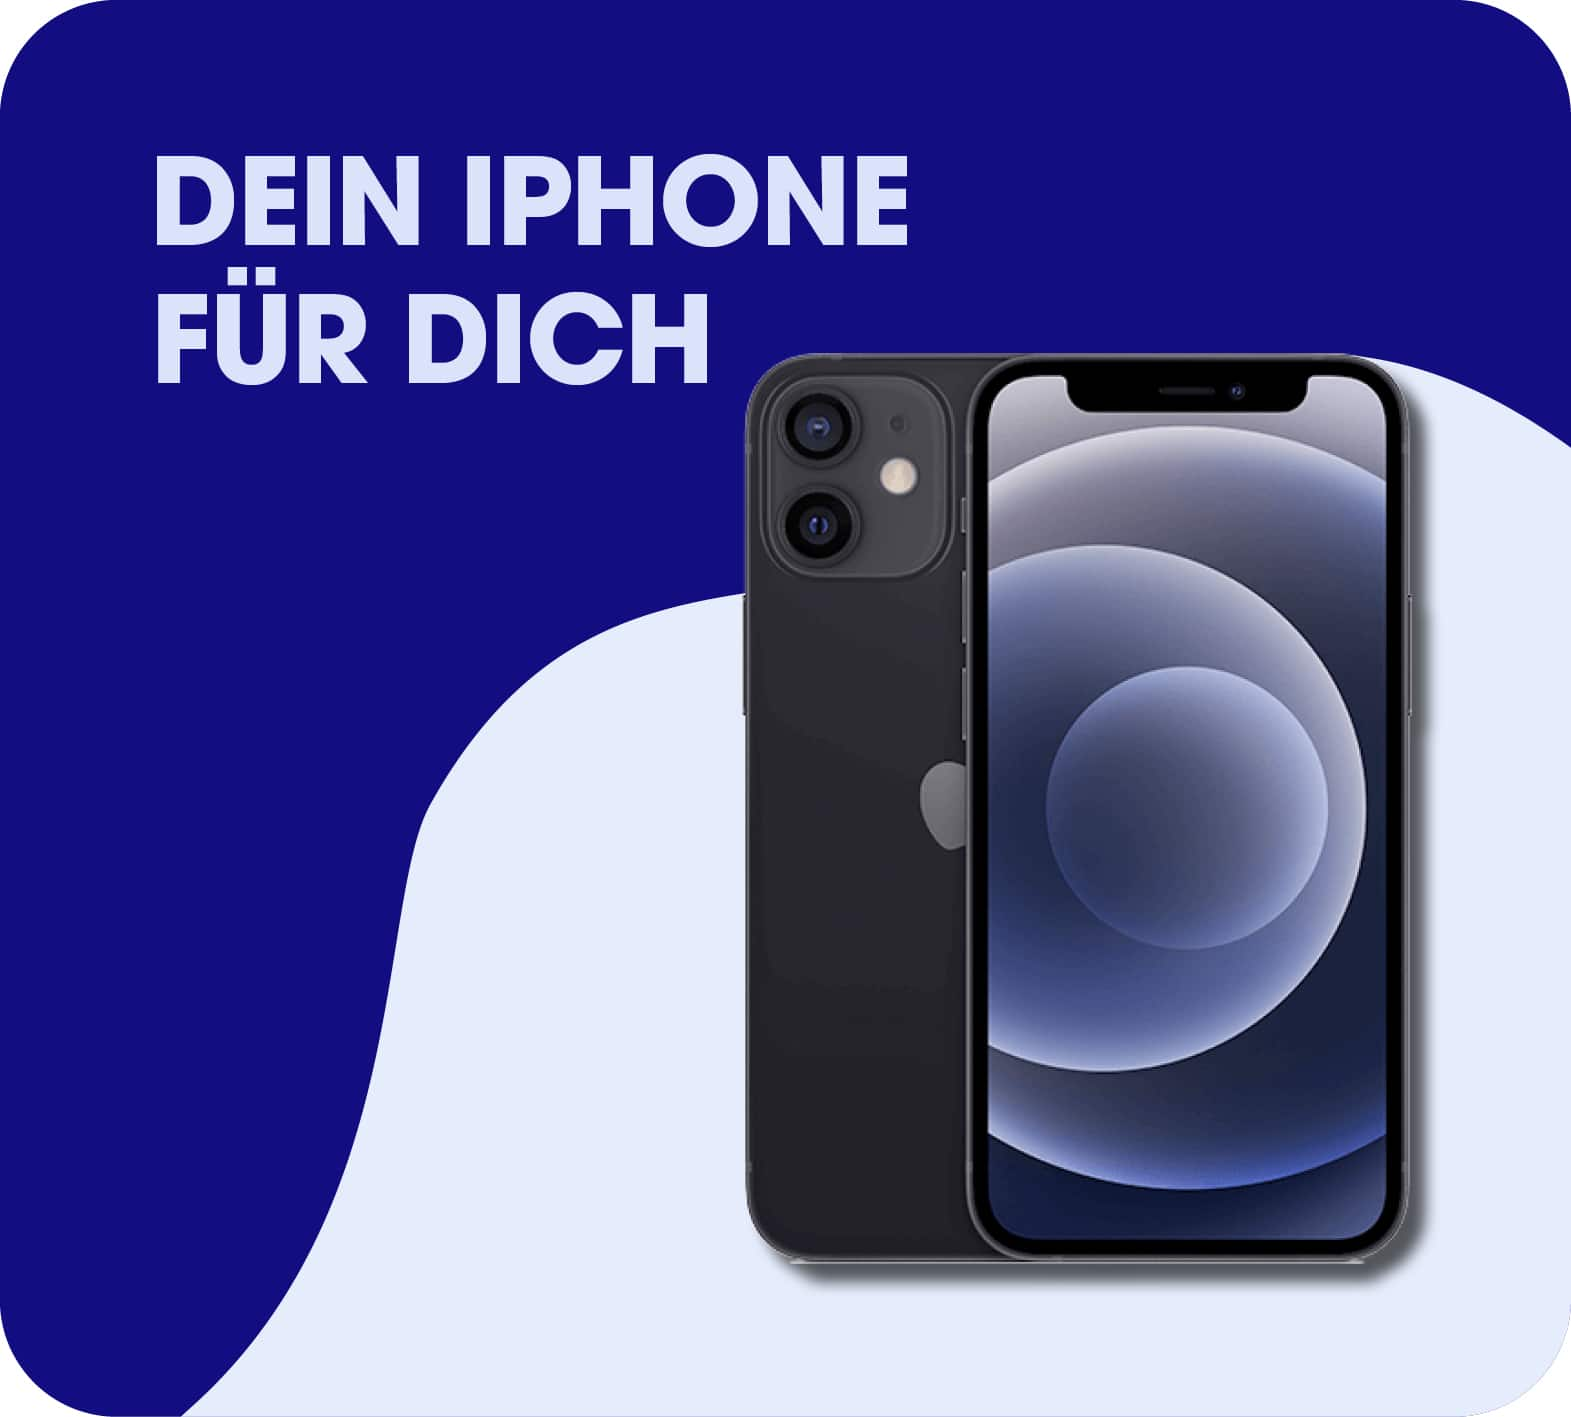 Dein neues iPhone!